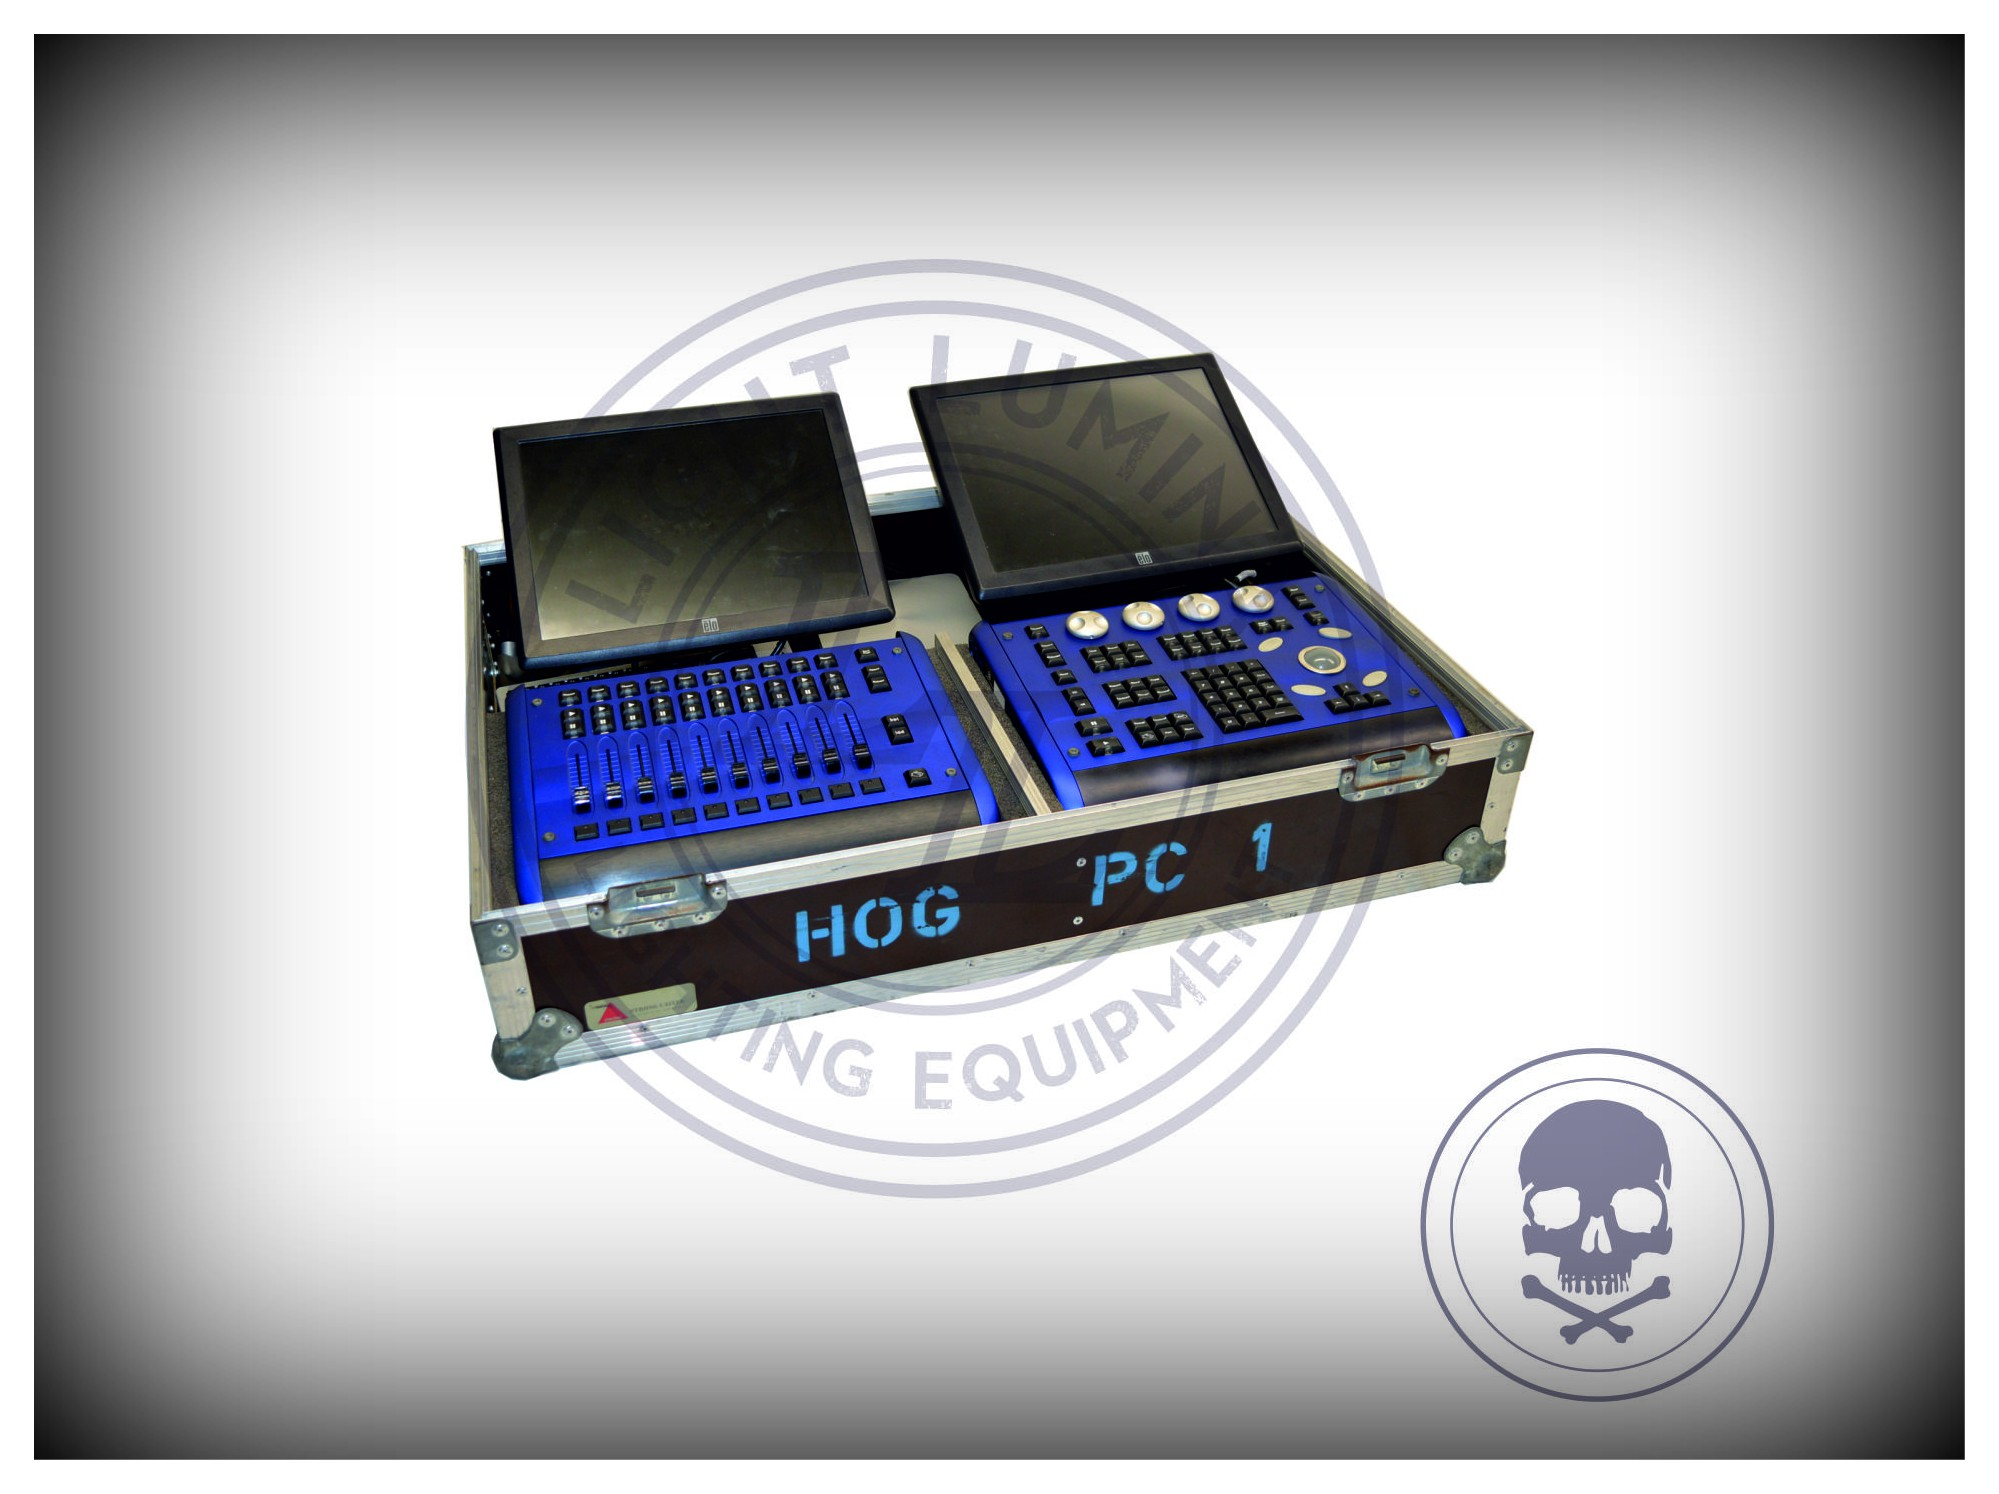 Whole Hog PC